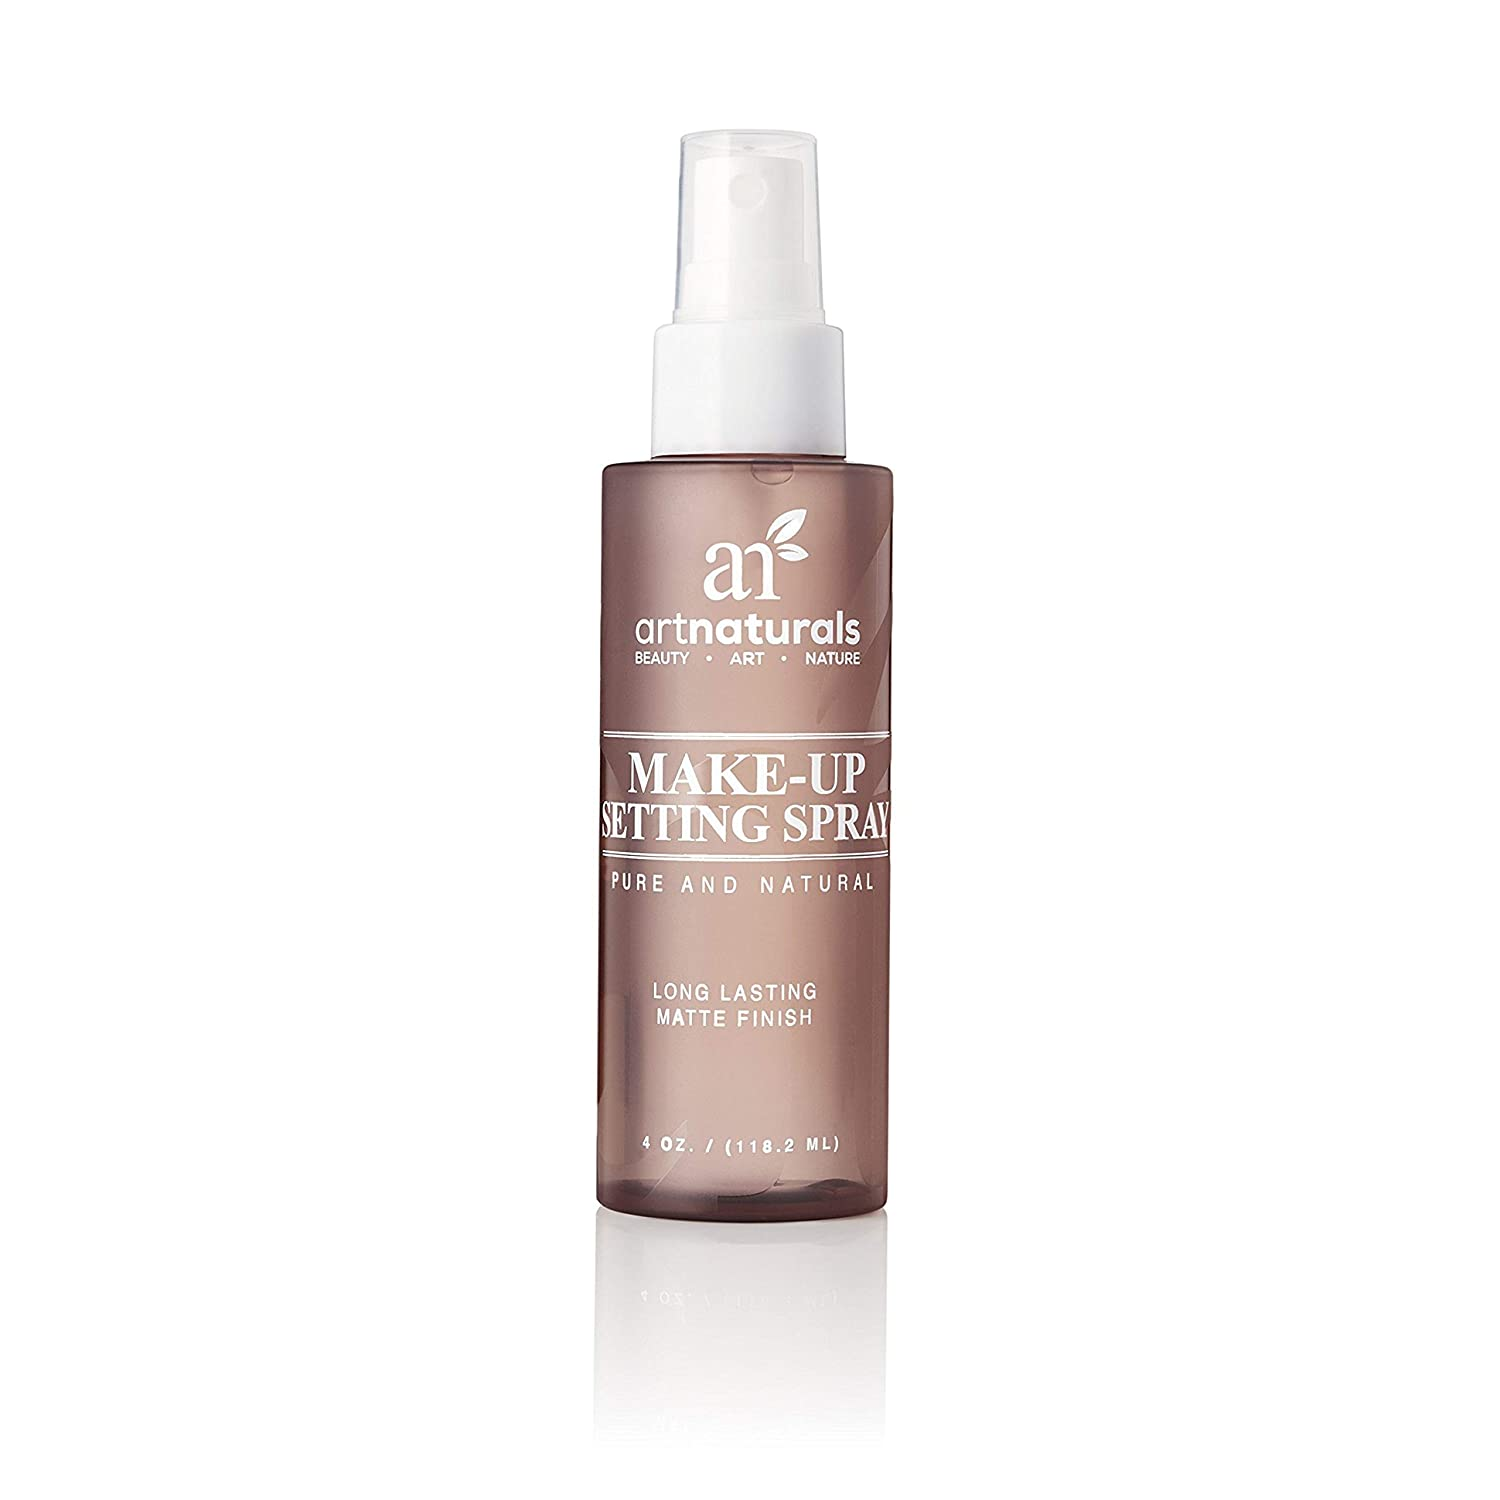 ArtNaturals Espray Fijador De Maquillaje - (4 Fl Oz/120ml) - Acabado Mate - Matte Makeup Setting Spray: Amazon.es: Belleza